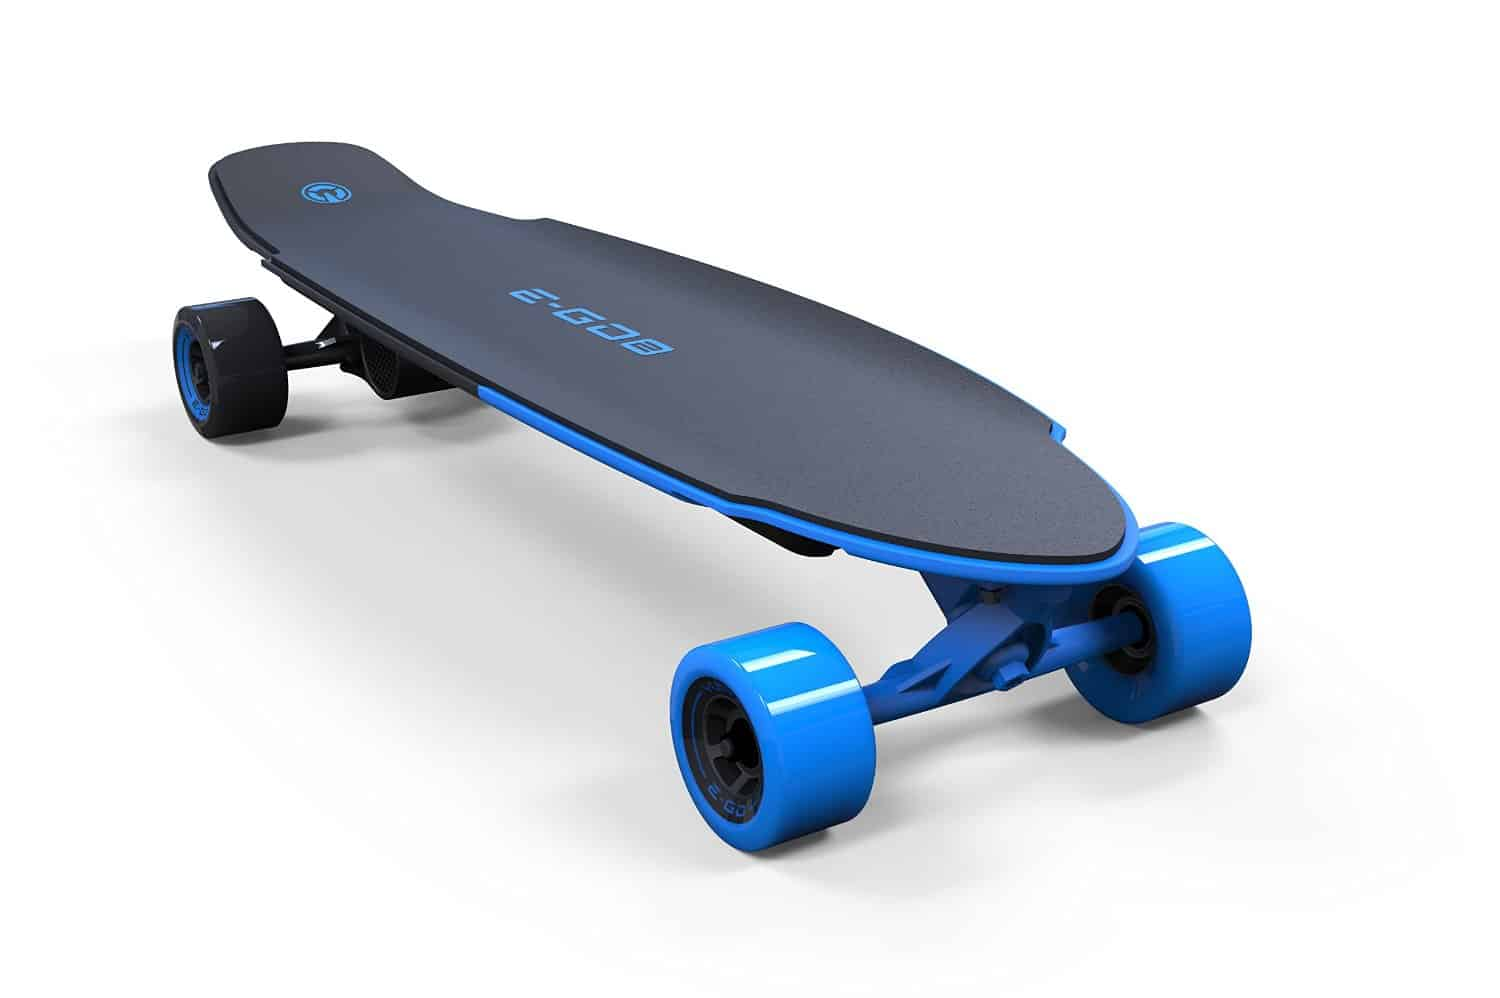 3 Wheel Scooter For Adults >> Best Electric Skateboard Under $400 - Yuneec E-GO2 - Wild ...